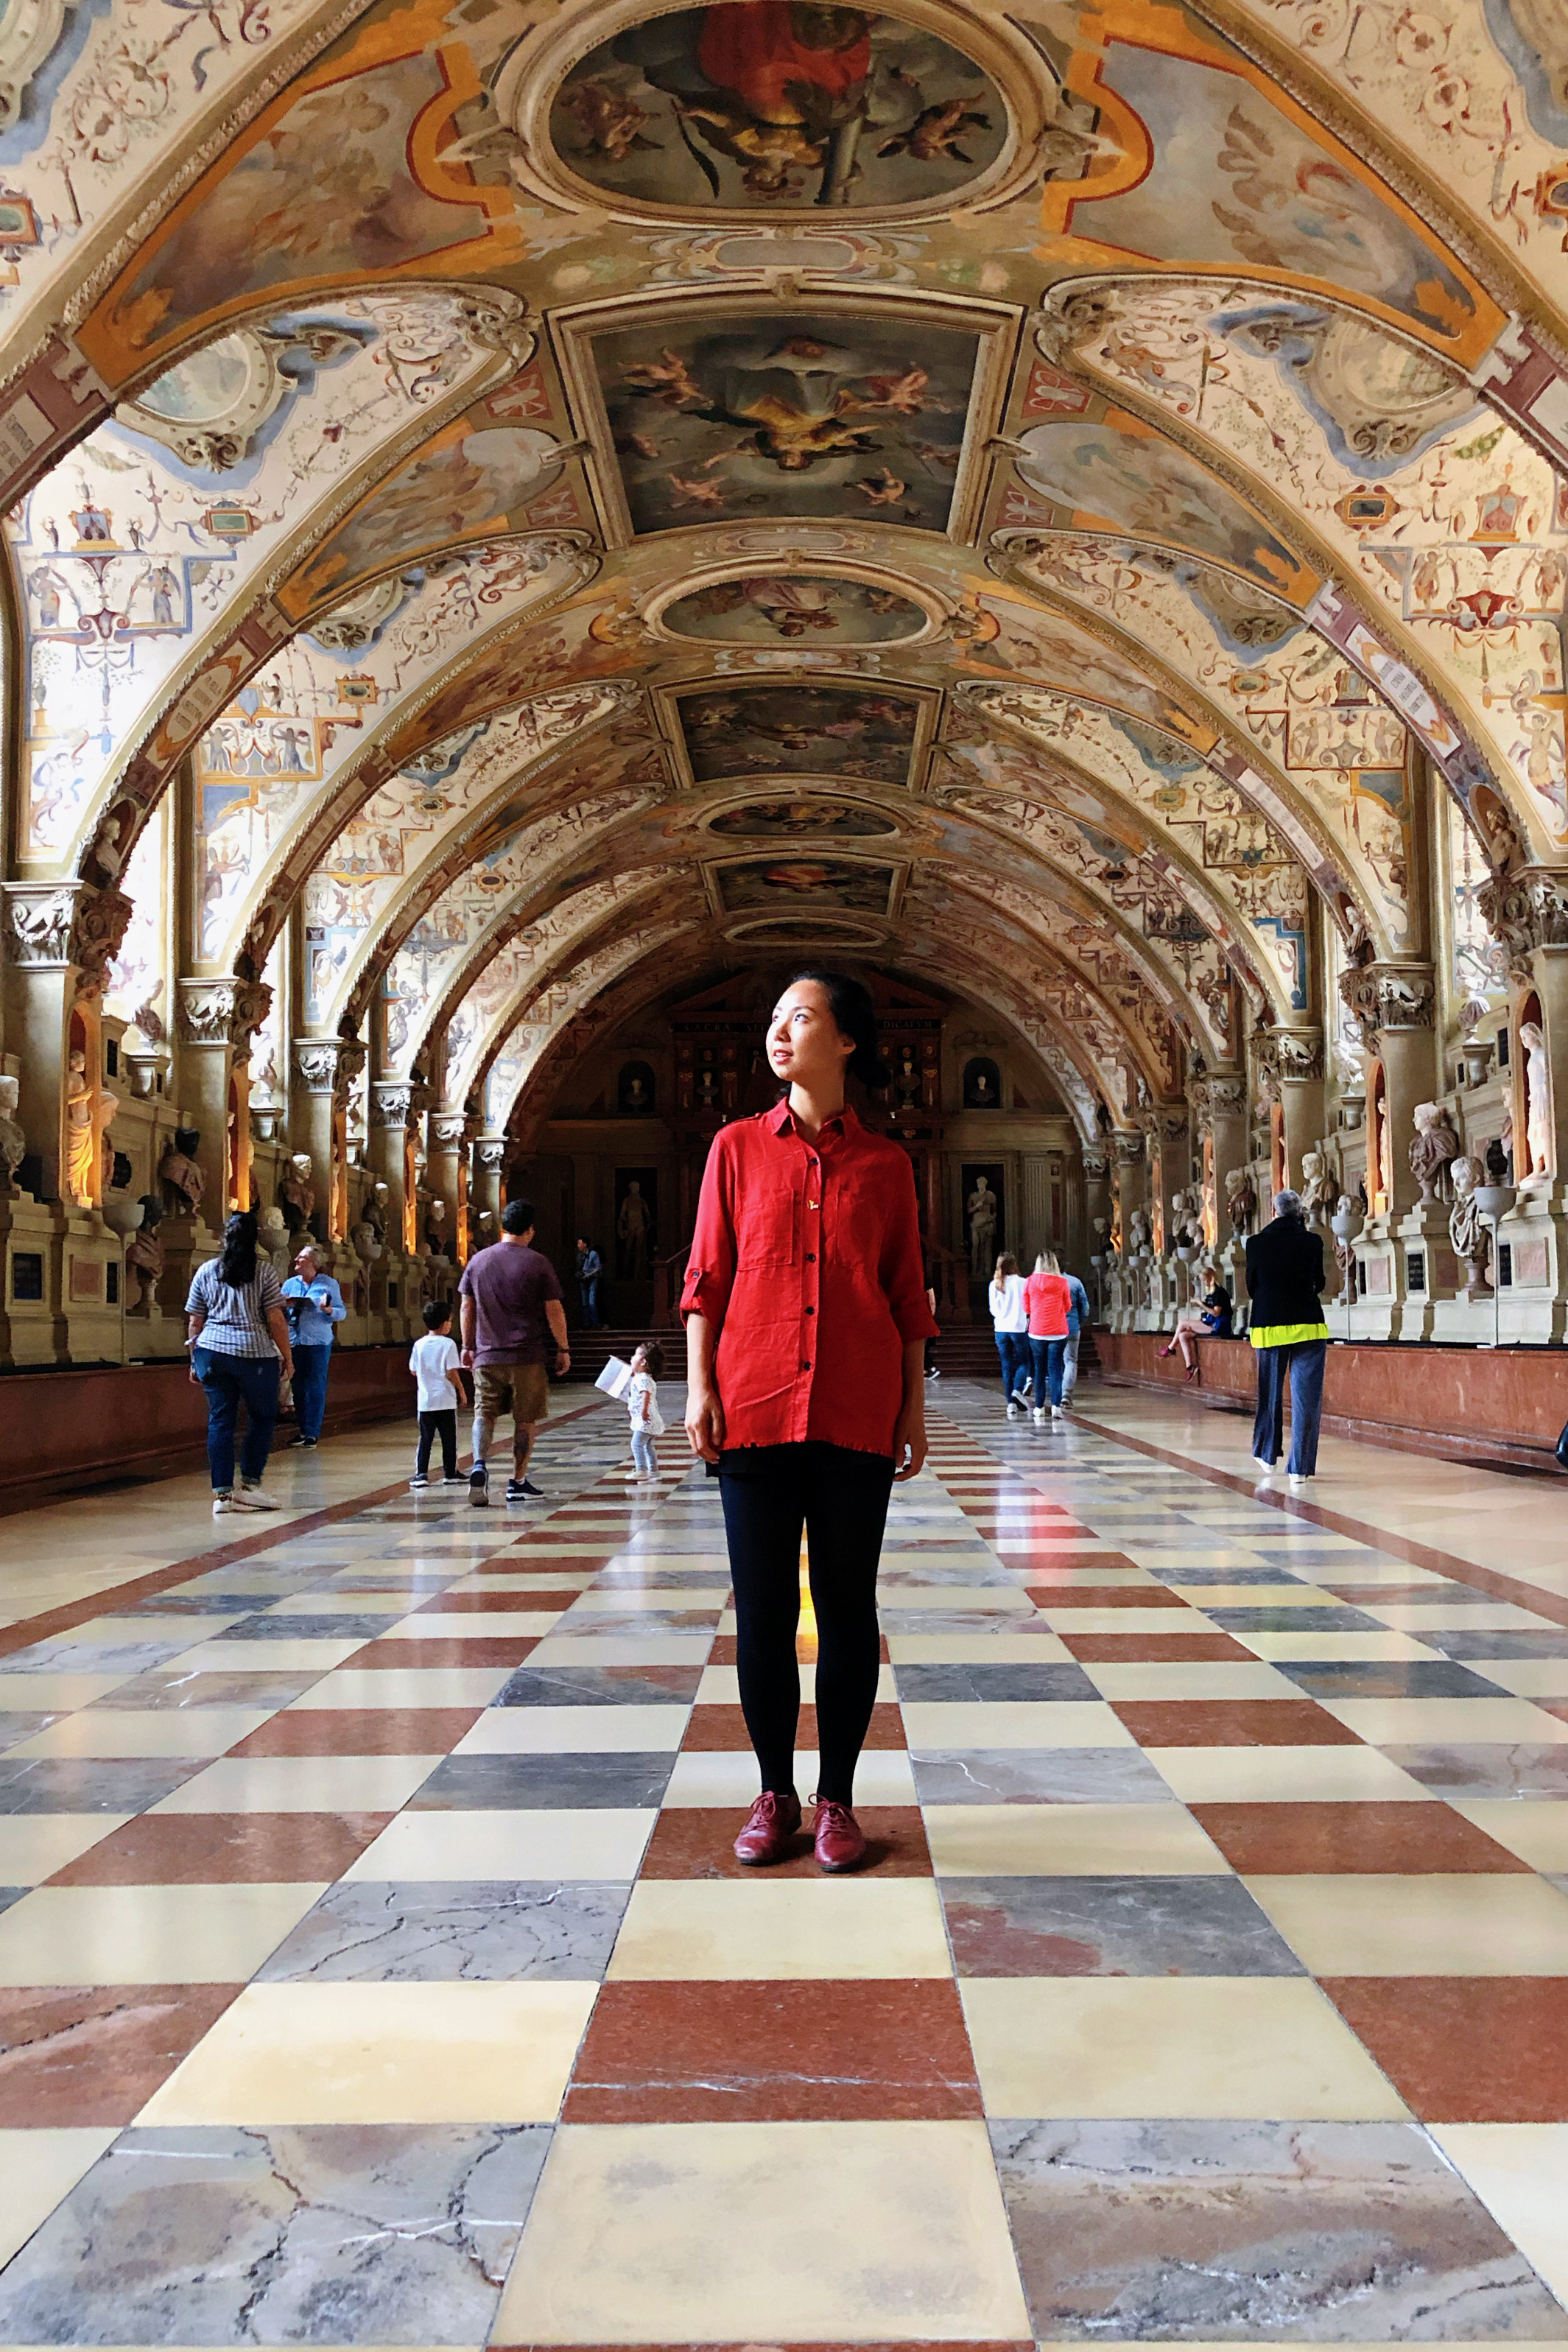 Mandy Han, studying abroad in Munich, Germany, standing in museum hallway